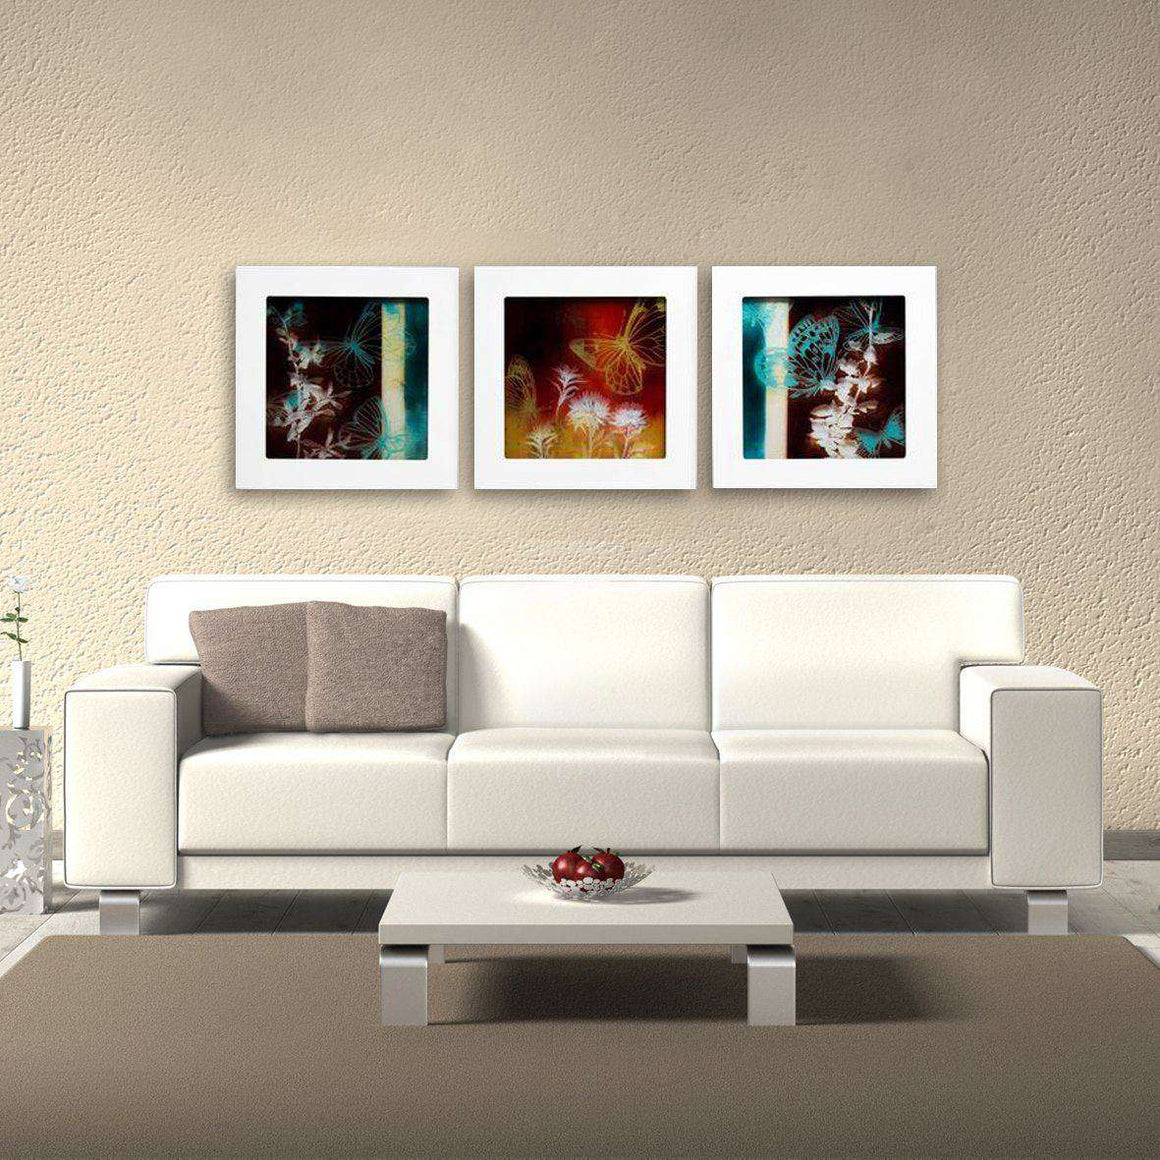 Moonlight Butterfly - Shadowbox Frame Print on Glass - Set of 3